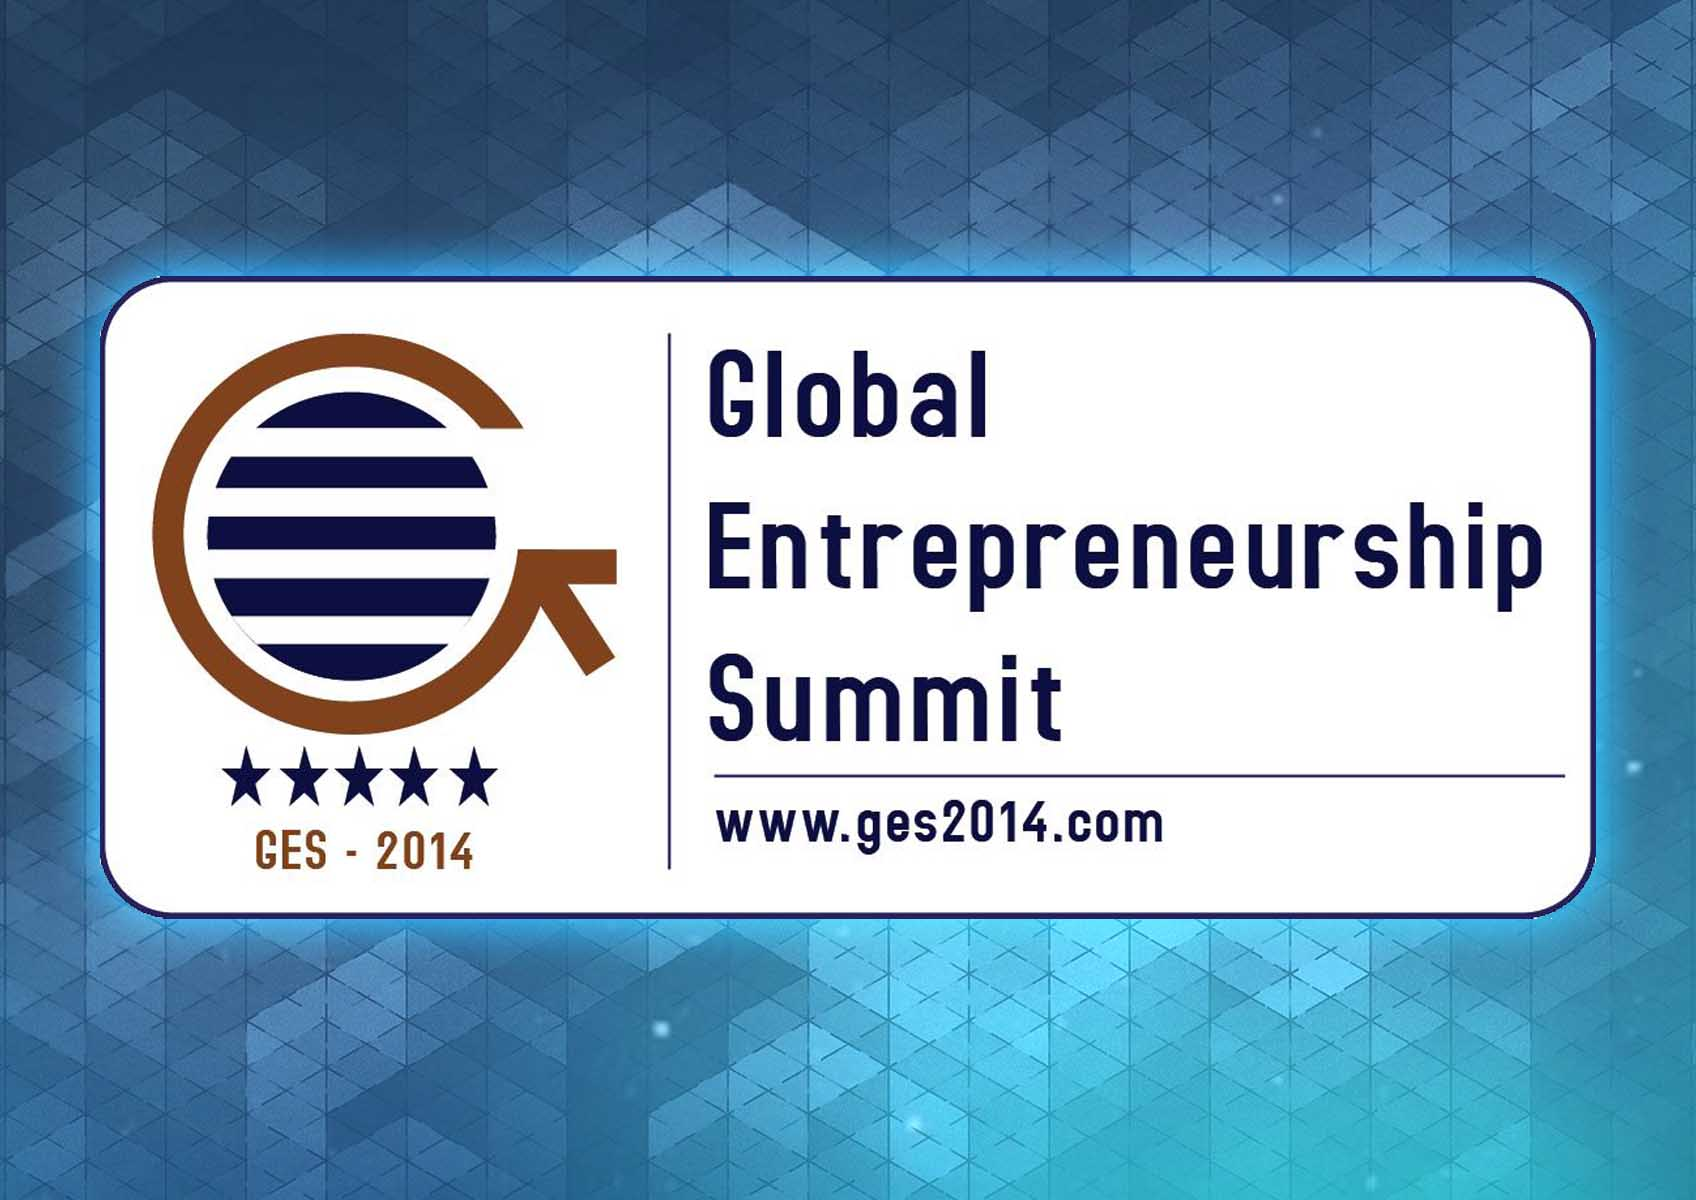 GES 2014: Morocco Becomes First African Country To Host Global Entrepreneurship Summit